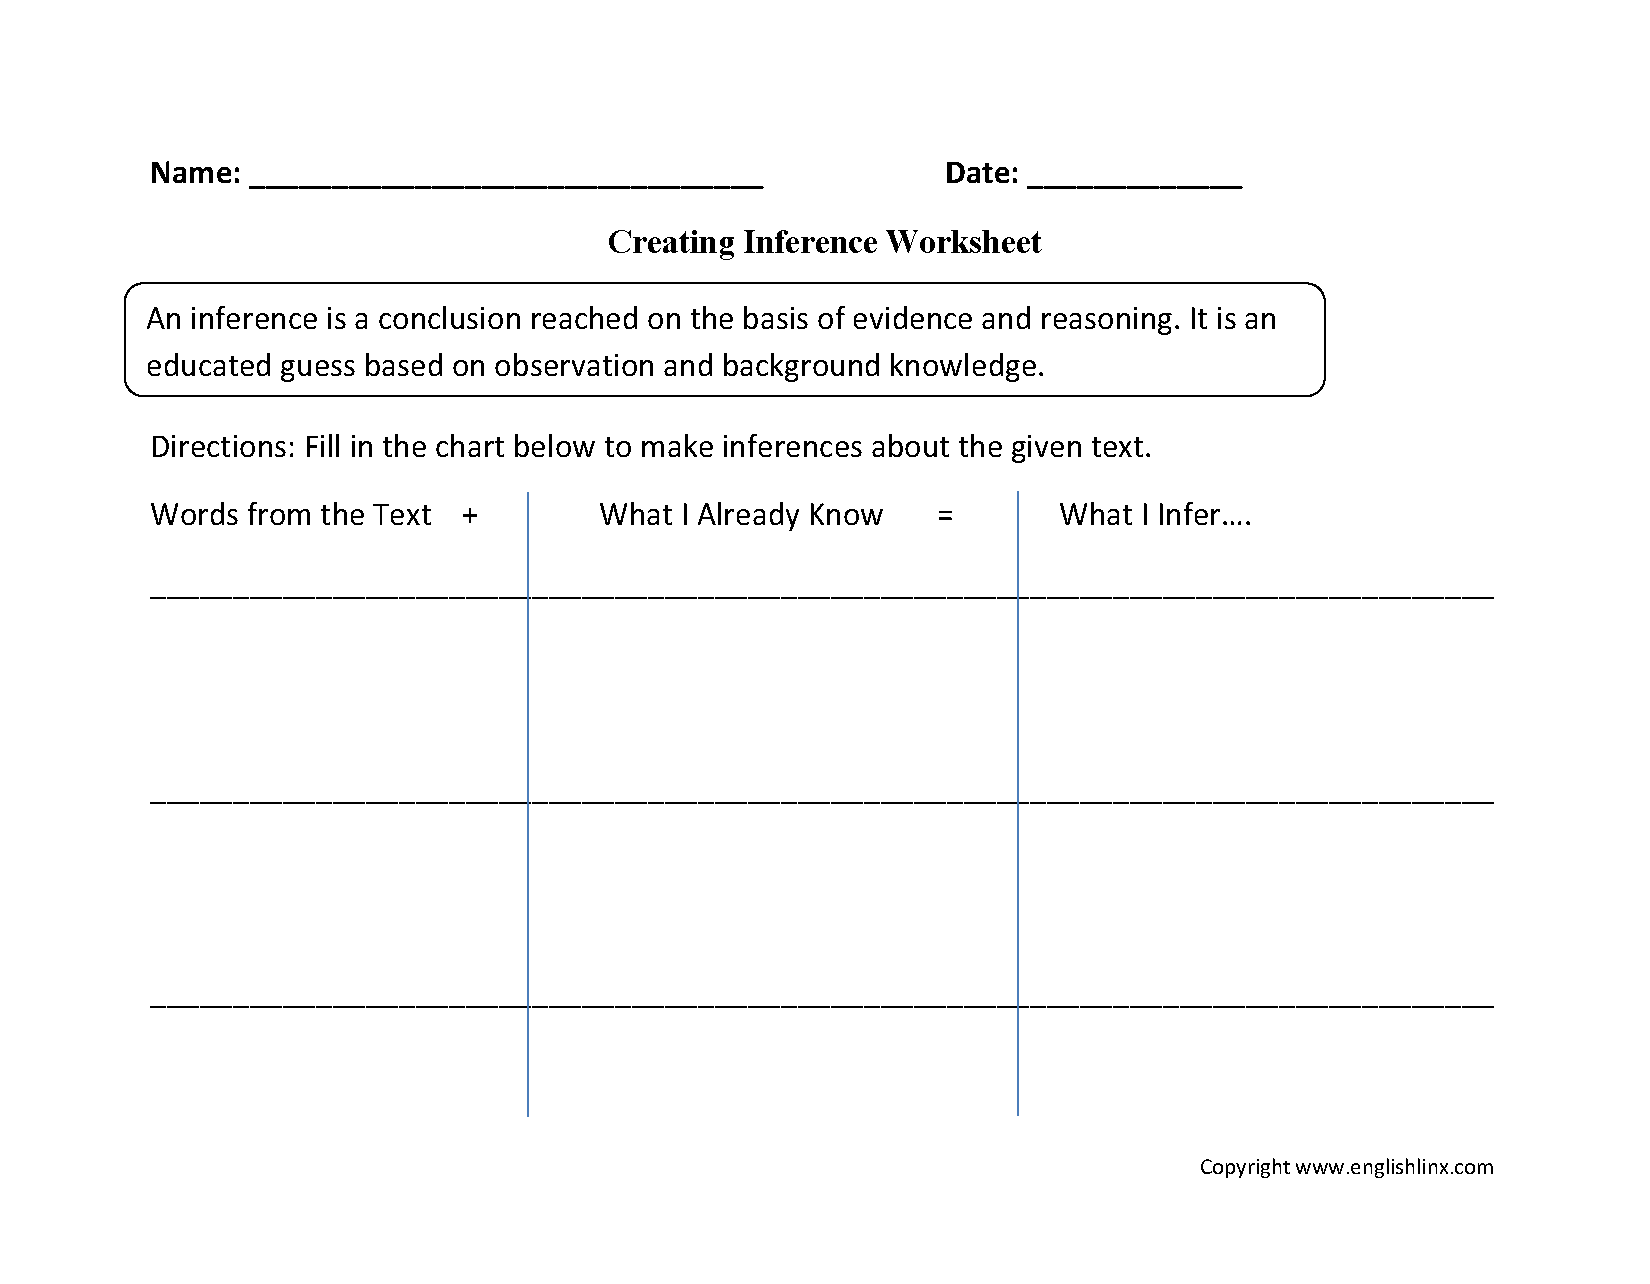 Worksheets Making Inferences Worksheets reading worksheets inference worksheets